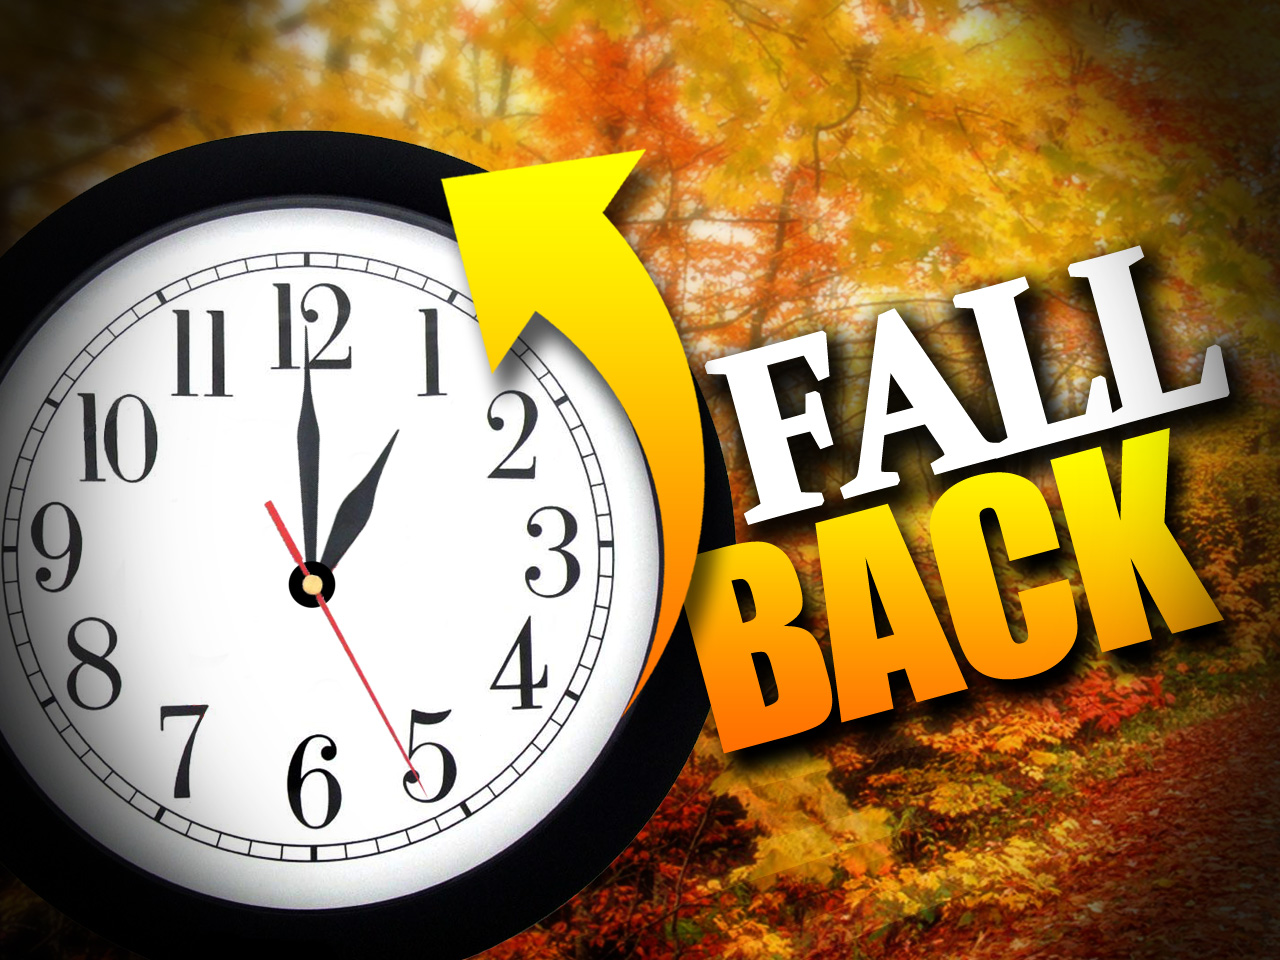 Time Change Tonight...Fall Back 1 Hr